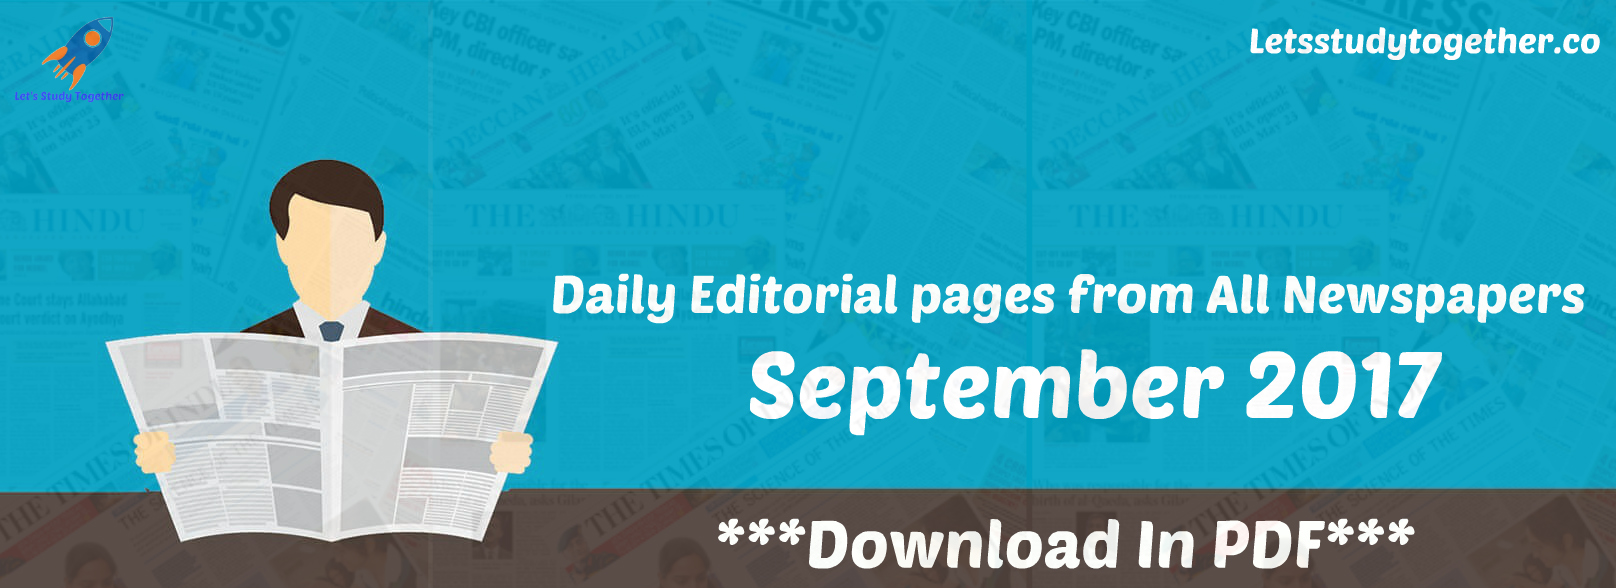 Daily Editorial pages from All Newspapers